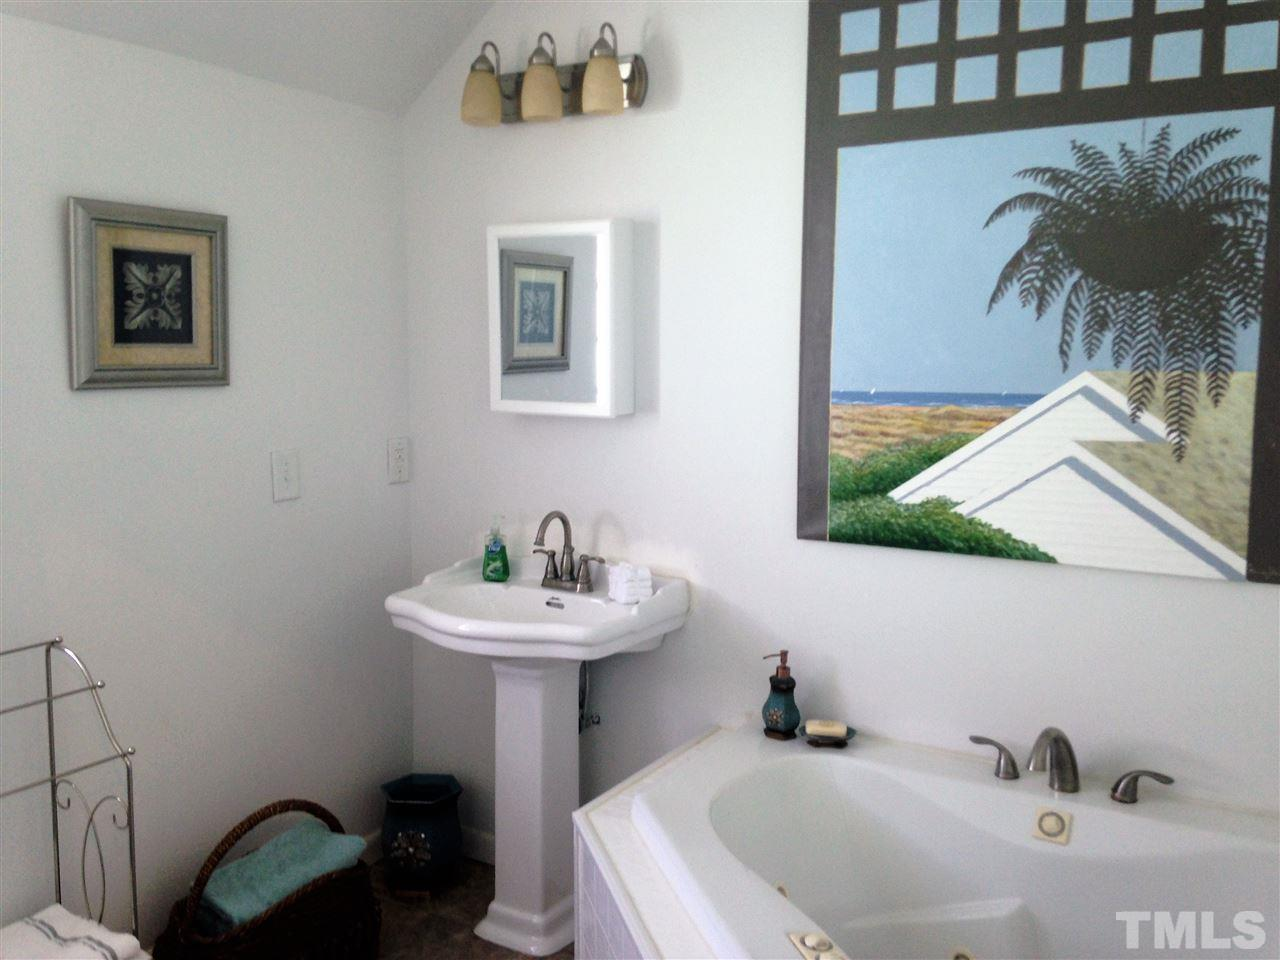 Private whirlpool tub with separate toilet area adjacent to the walk-in closet for dressing.